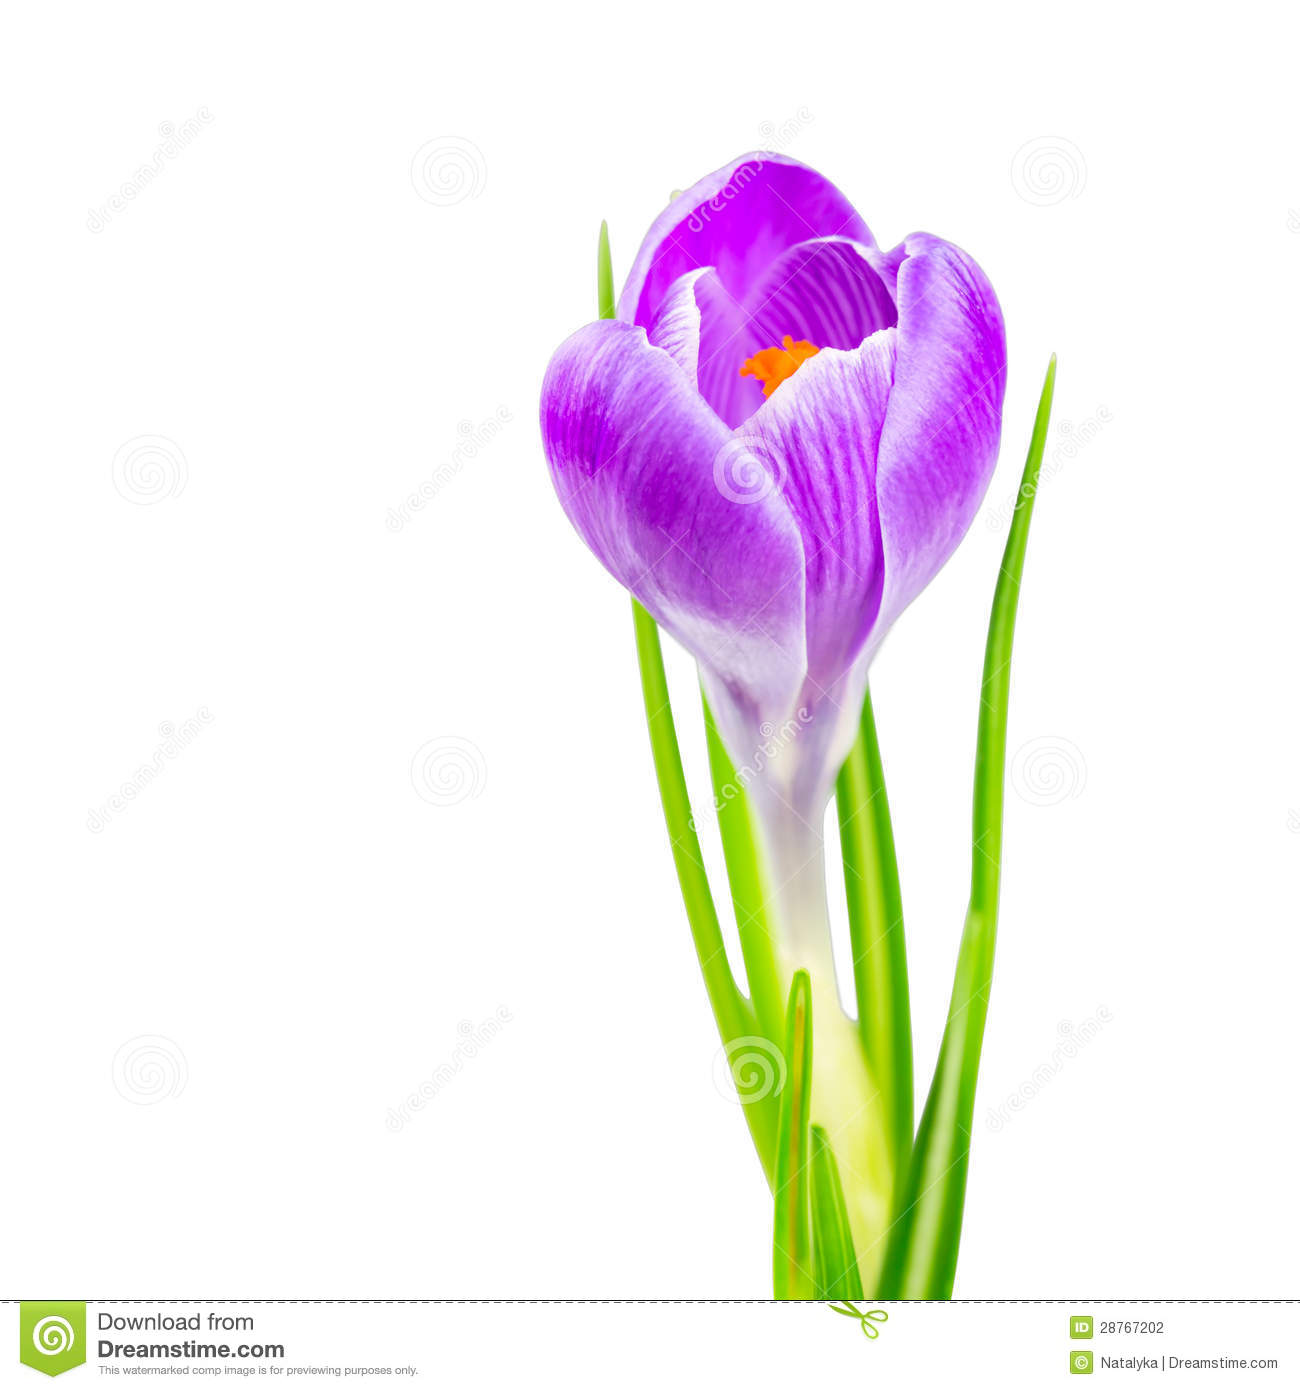 Blooming Spring Crocus Flower Stock Photography.